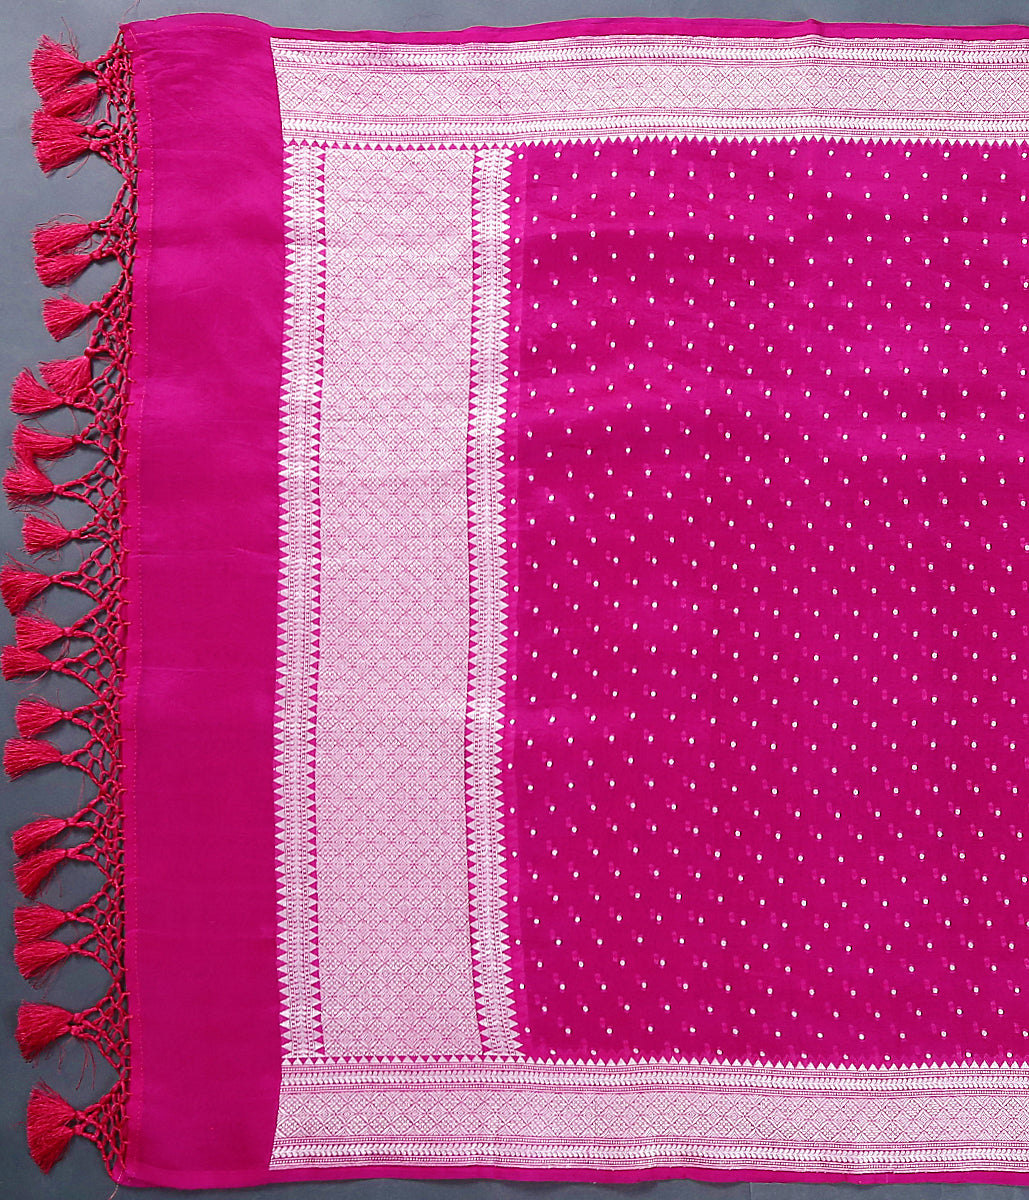 Handwoven Bnaarsi organza dupatta in hot pink with silver zari weave